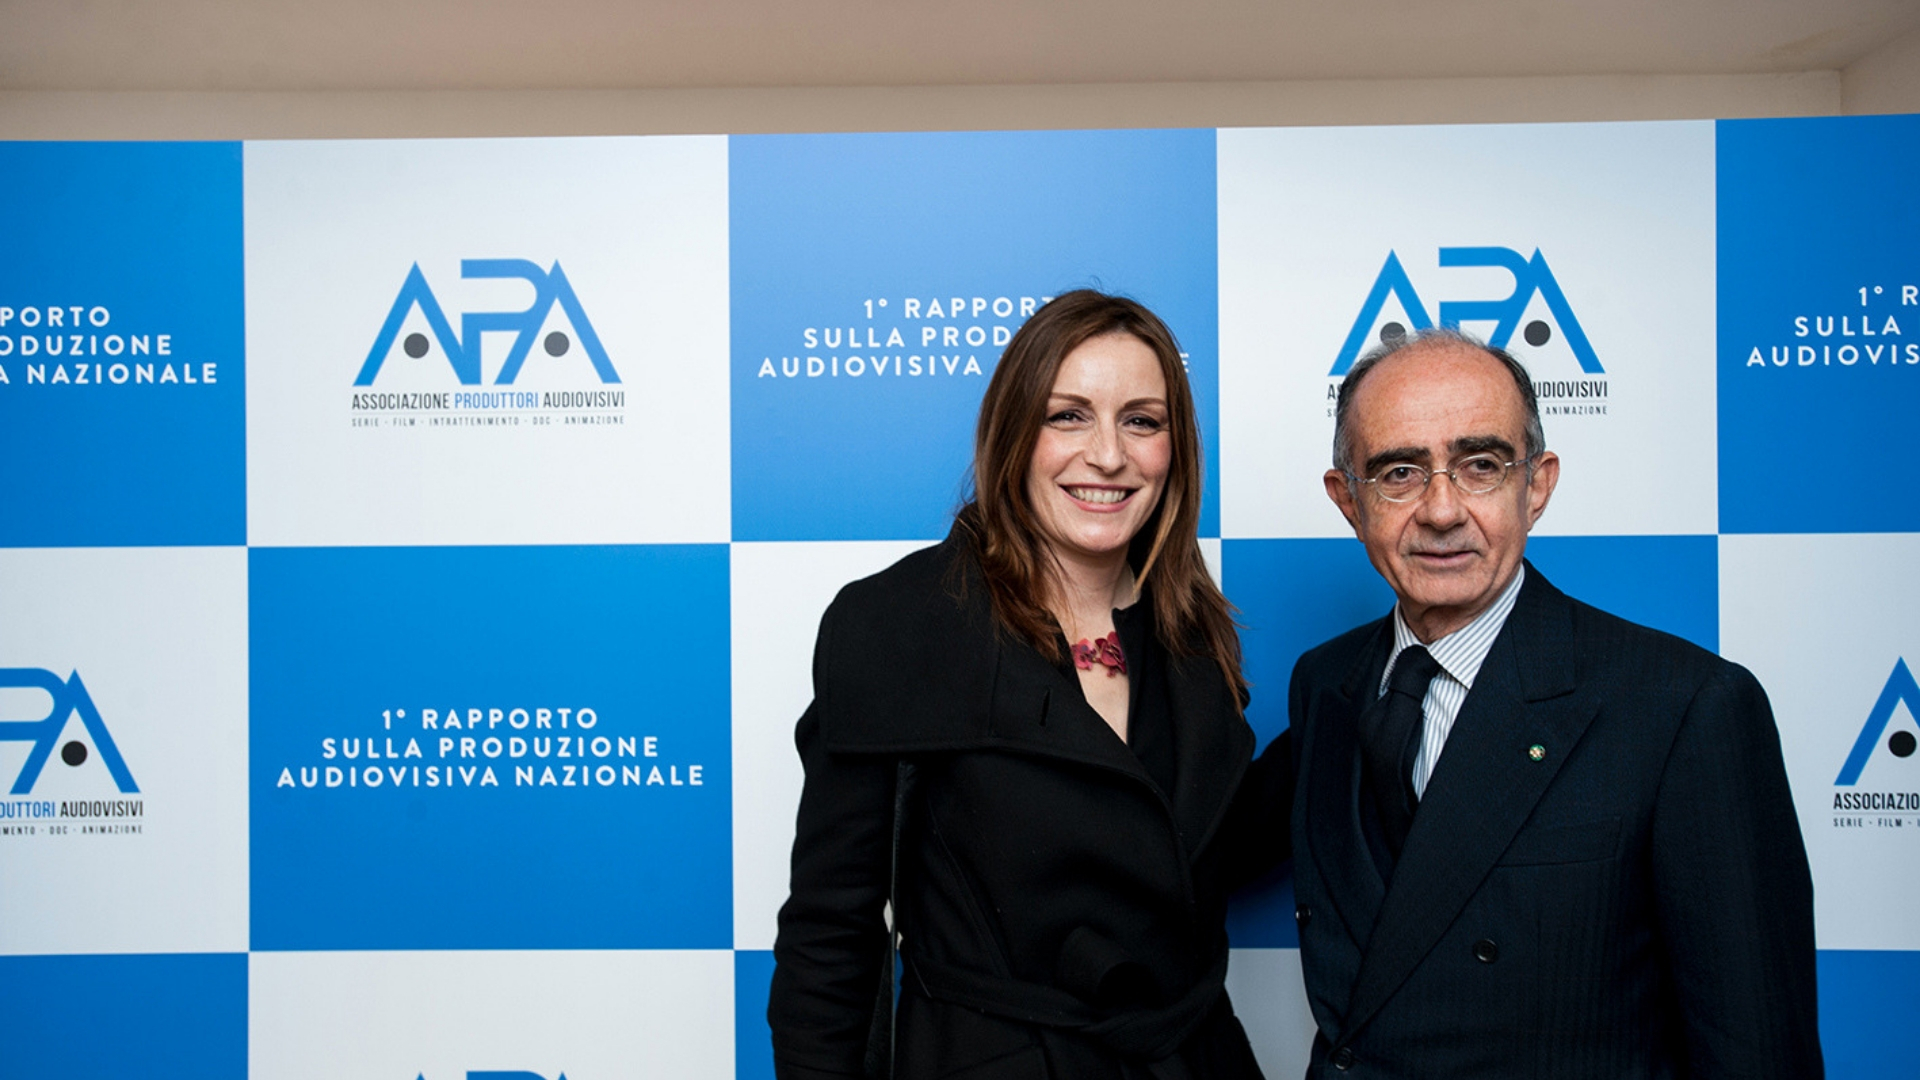 APT becomes APA and presents the 1st Report on National Audiovisual Production